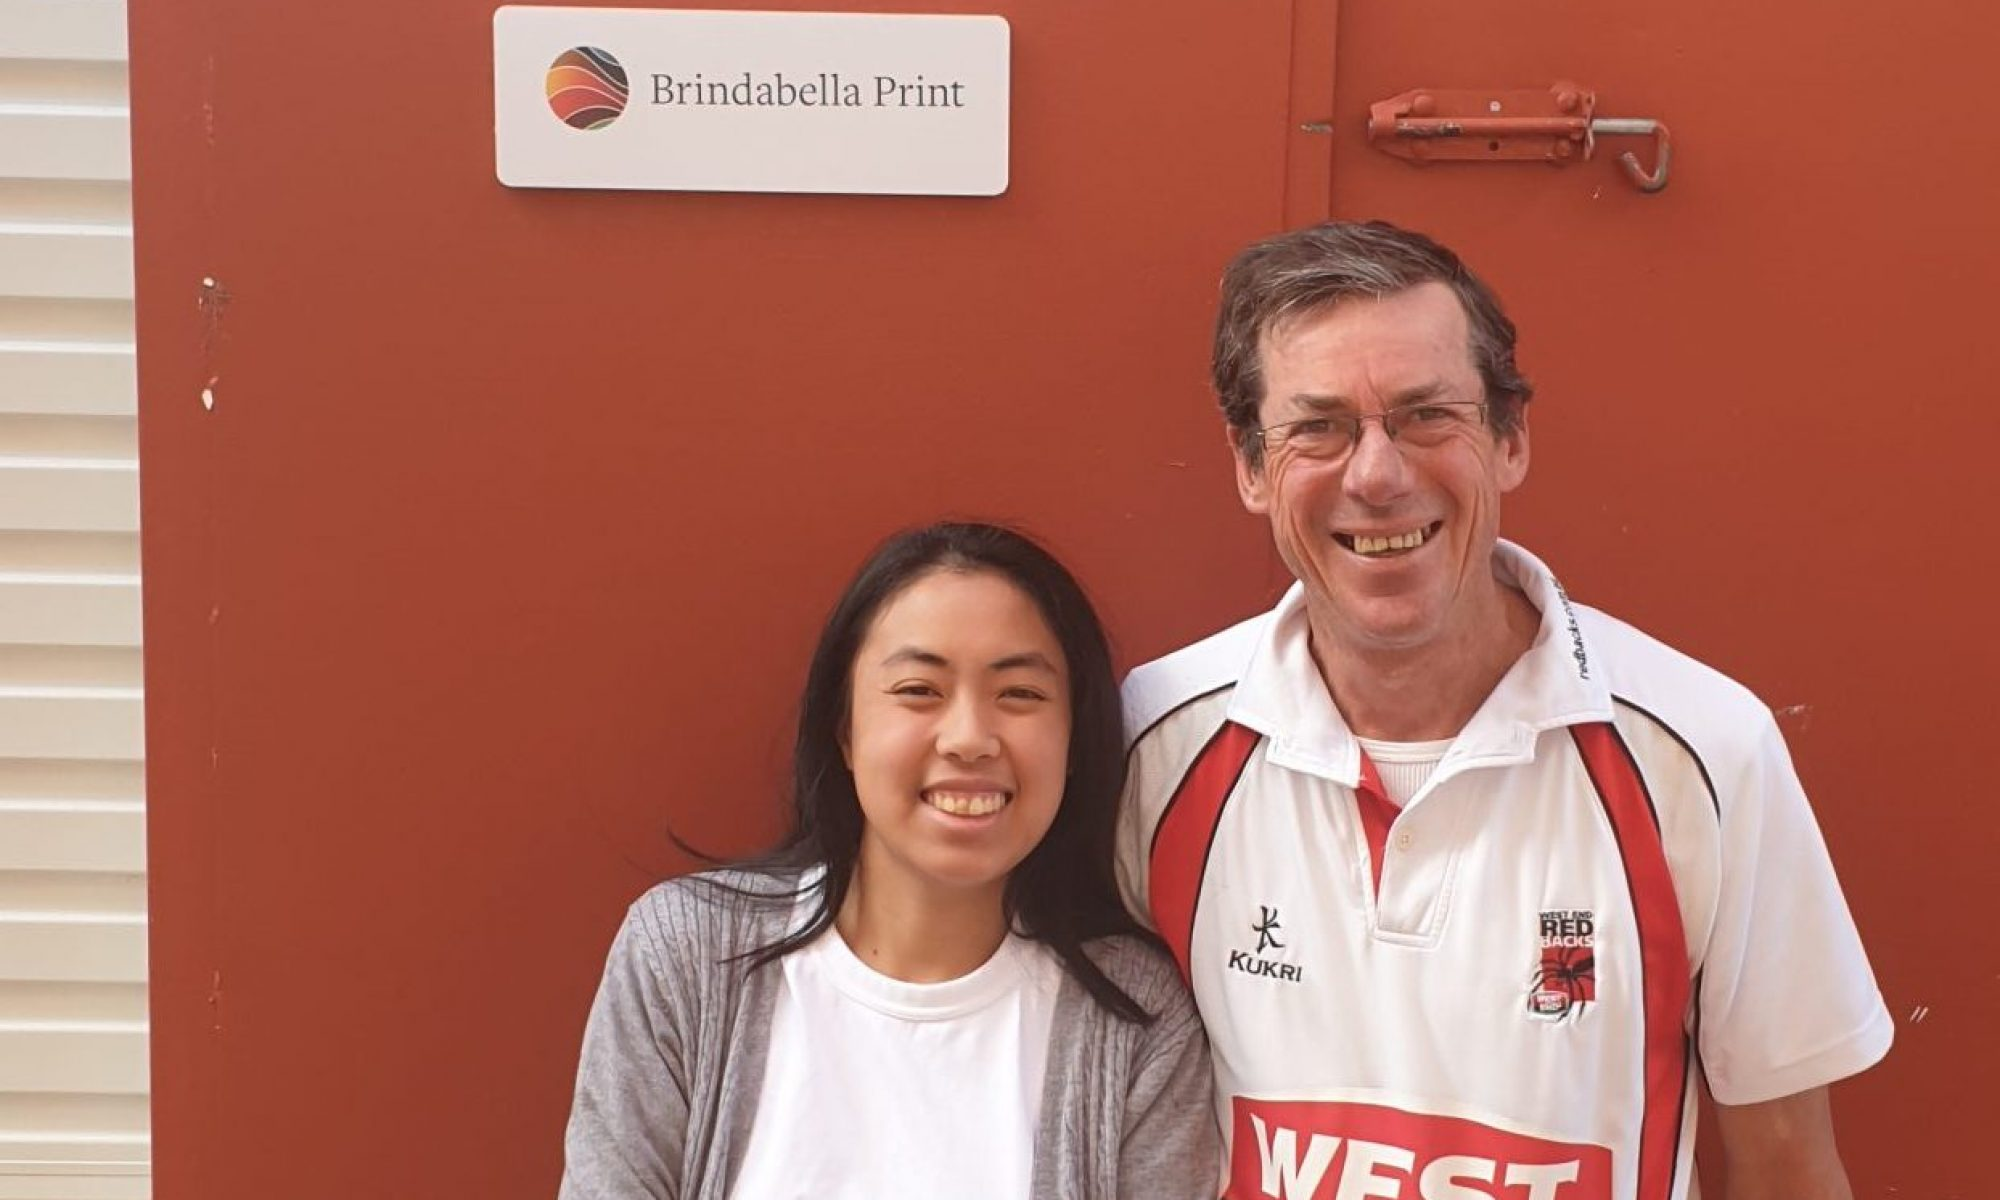 Members of the Brindabella Print Team - Kelsy is on the left while Sean is on the right